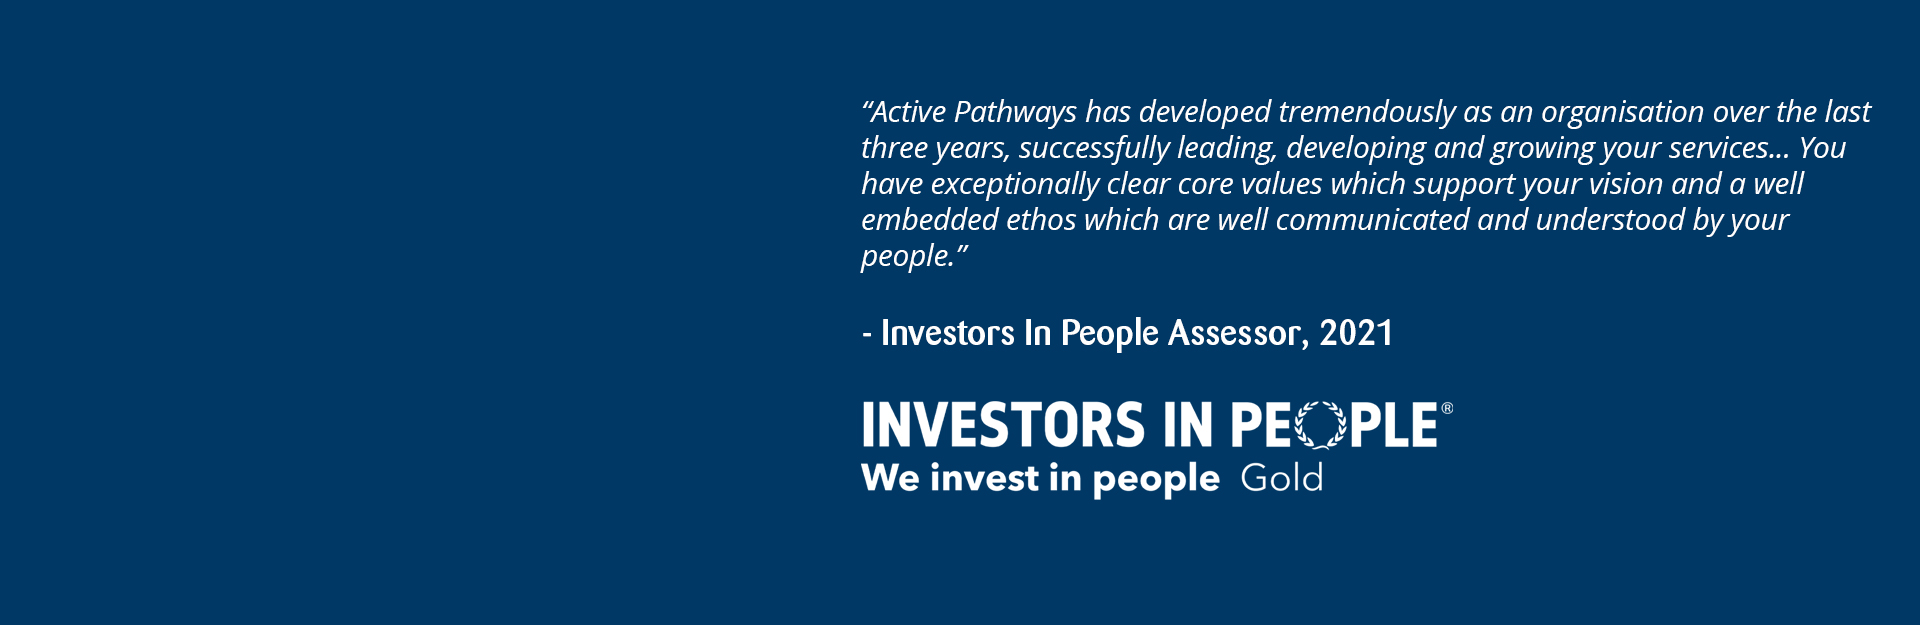 Active Pathways Awarded Gold Standard Investors In People